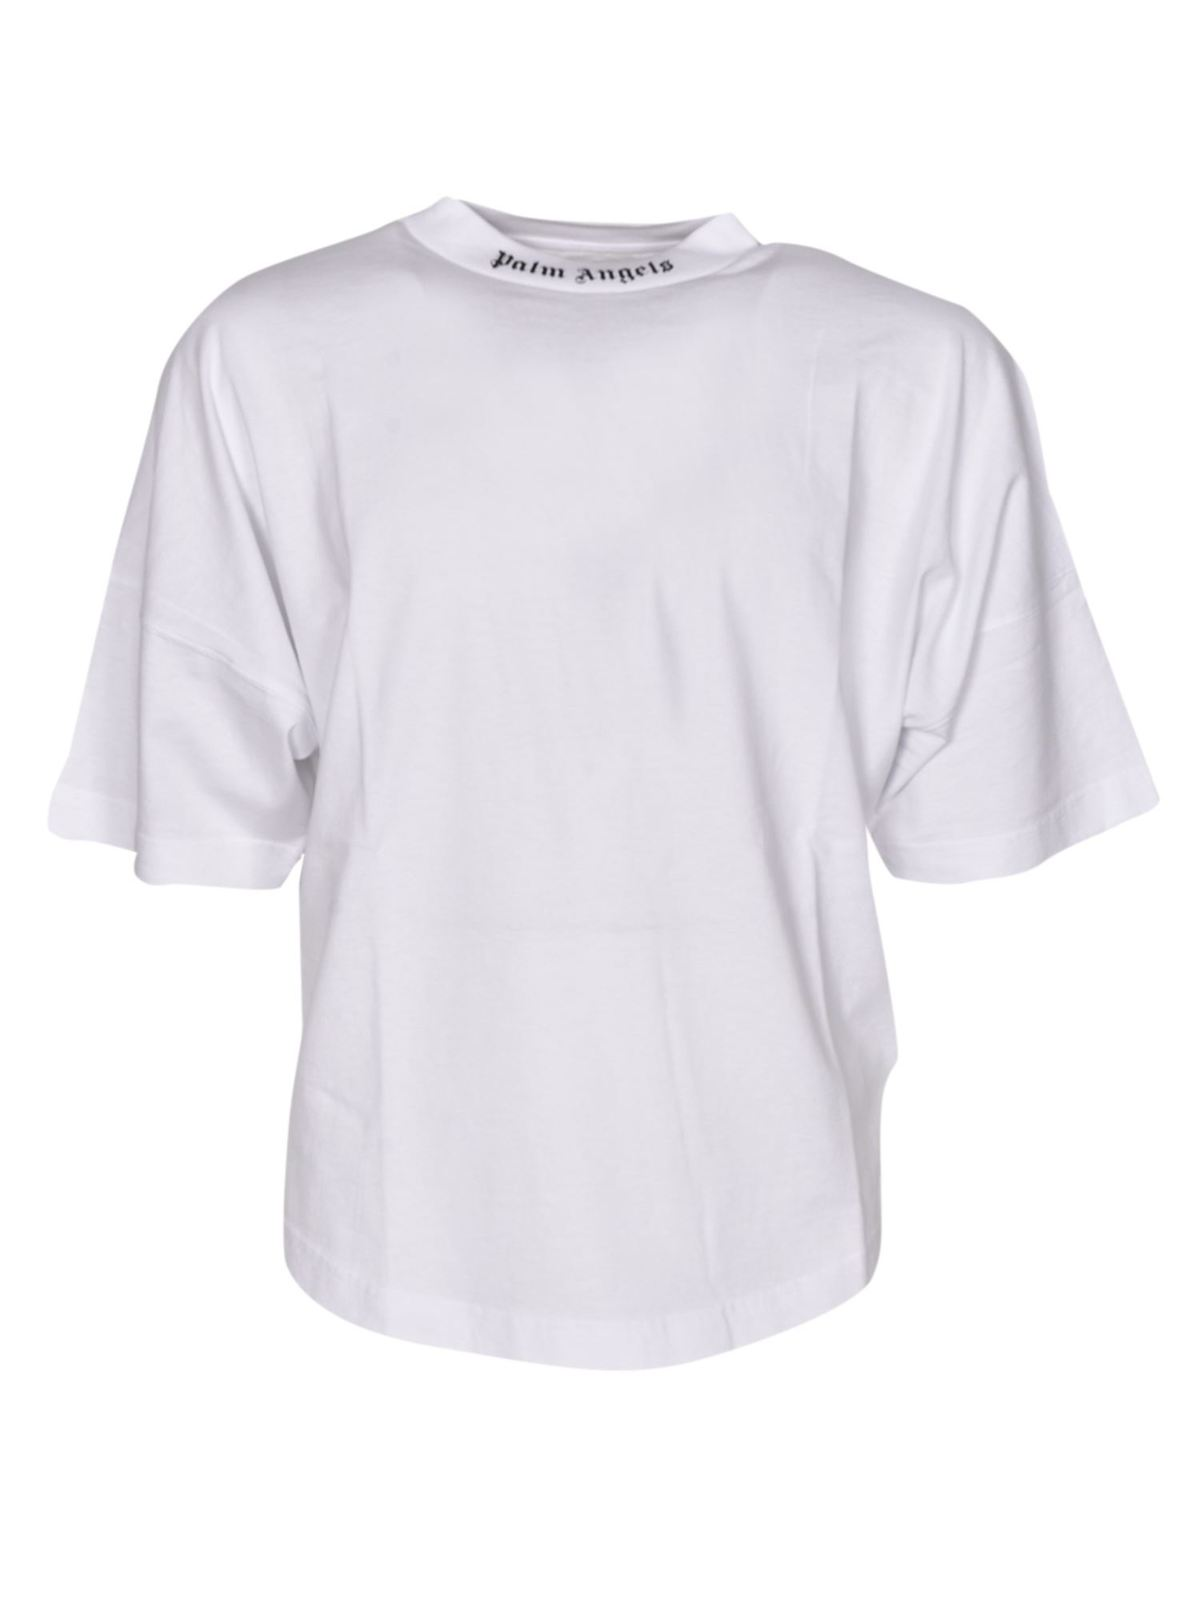 Palm Angels OVERSIZED LOGO LETTERING T-SHIRT IN WHITE